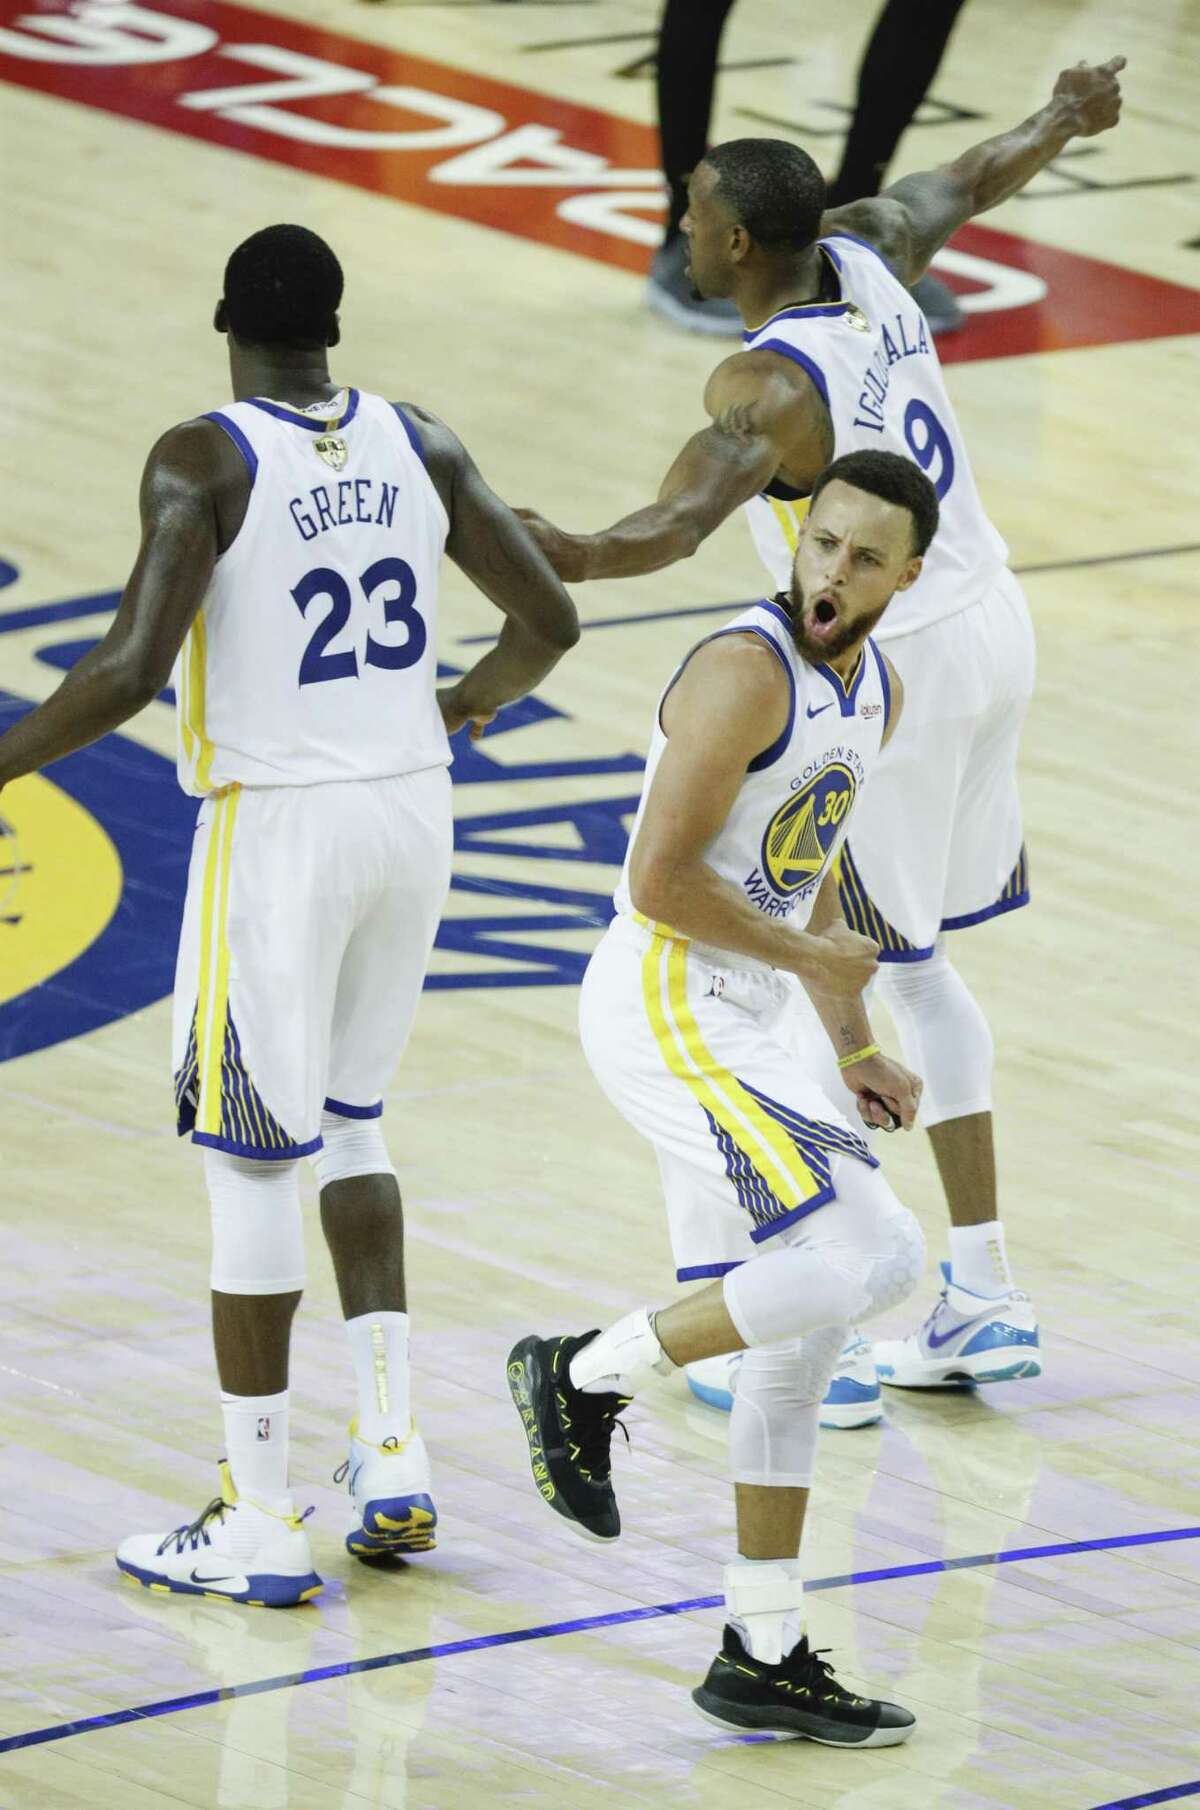 Golden State Warriors' Stephen Curry reacts after hitting a three-pointer in the second quarter during game 3 of the NBA Finals between the Golden State Warriors and the Toronto Raptors at Oracle Arena on Wednesday, June 5, 2019 in Oakland, Calif.